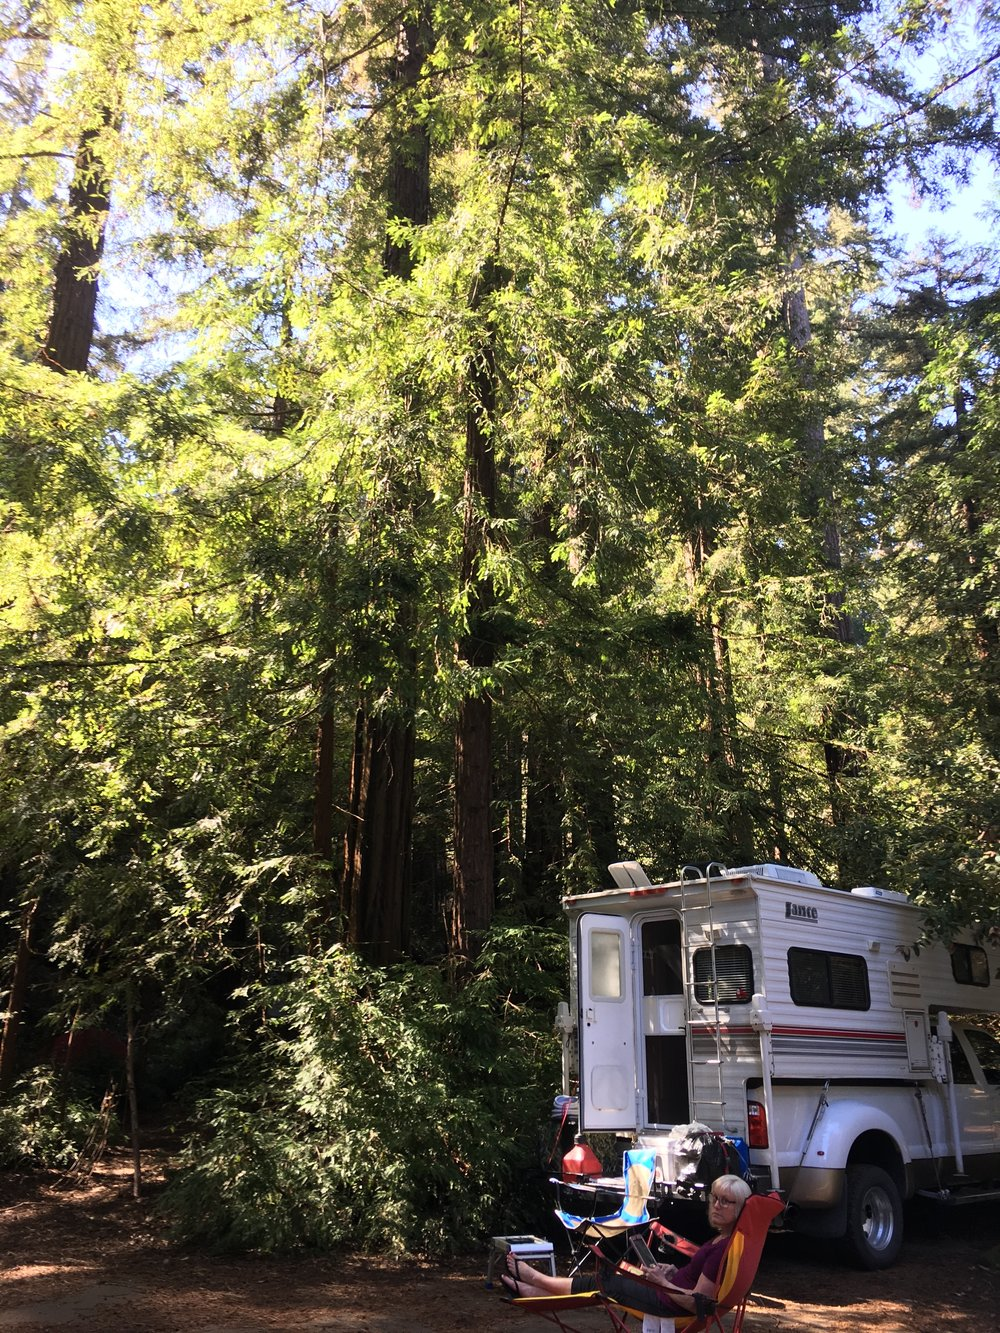 The truck camper nestled into the trees at Samuel P. Taylor State Park.